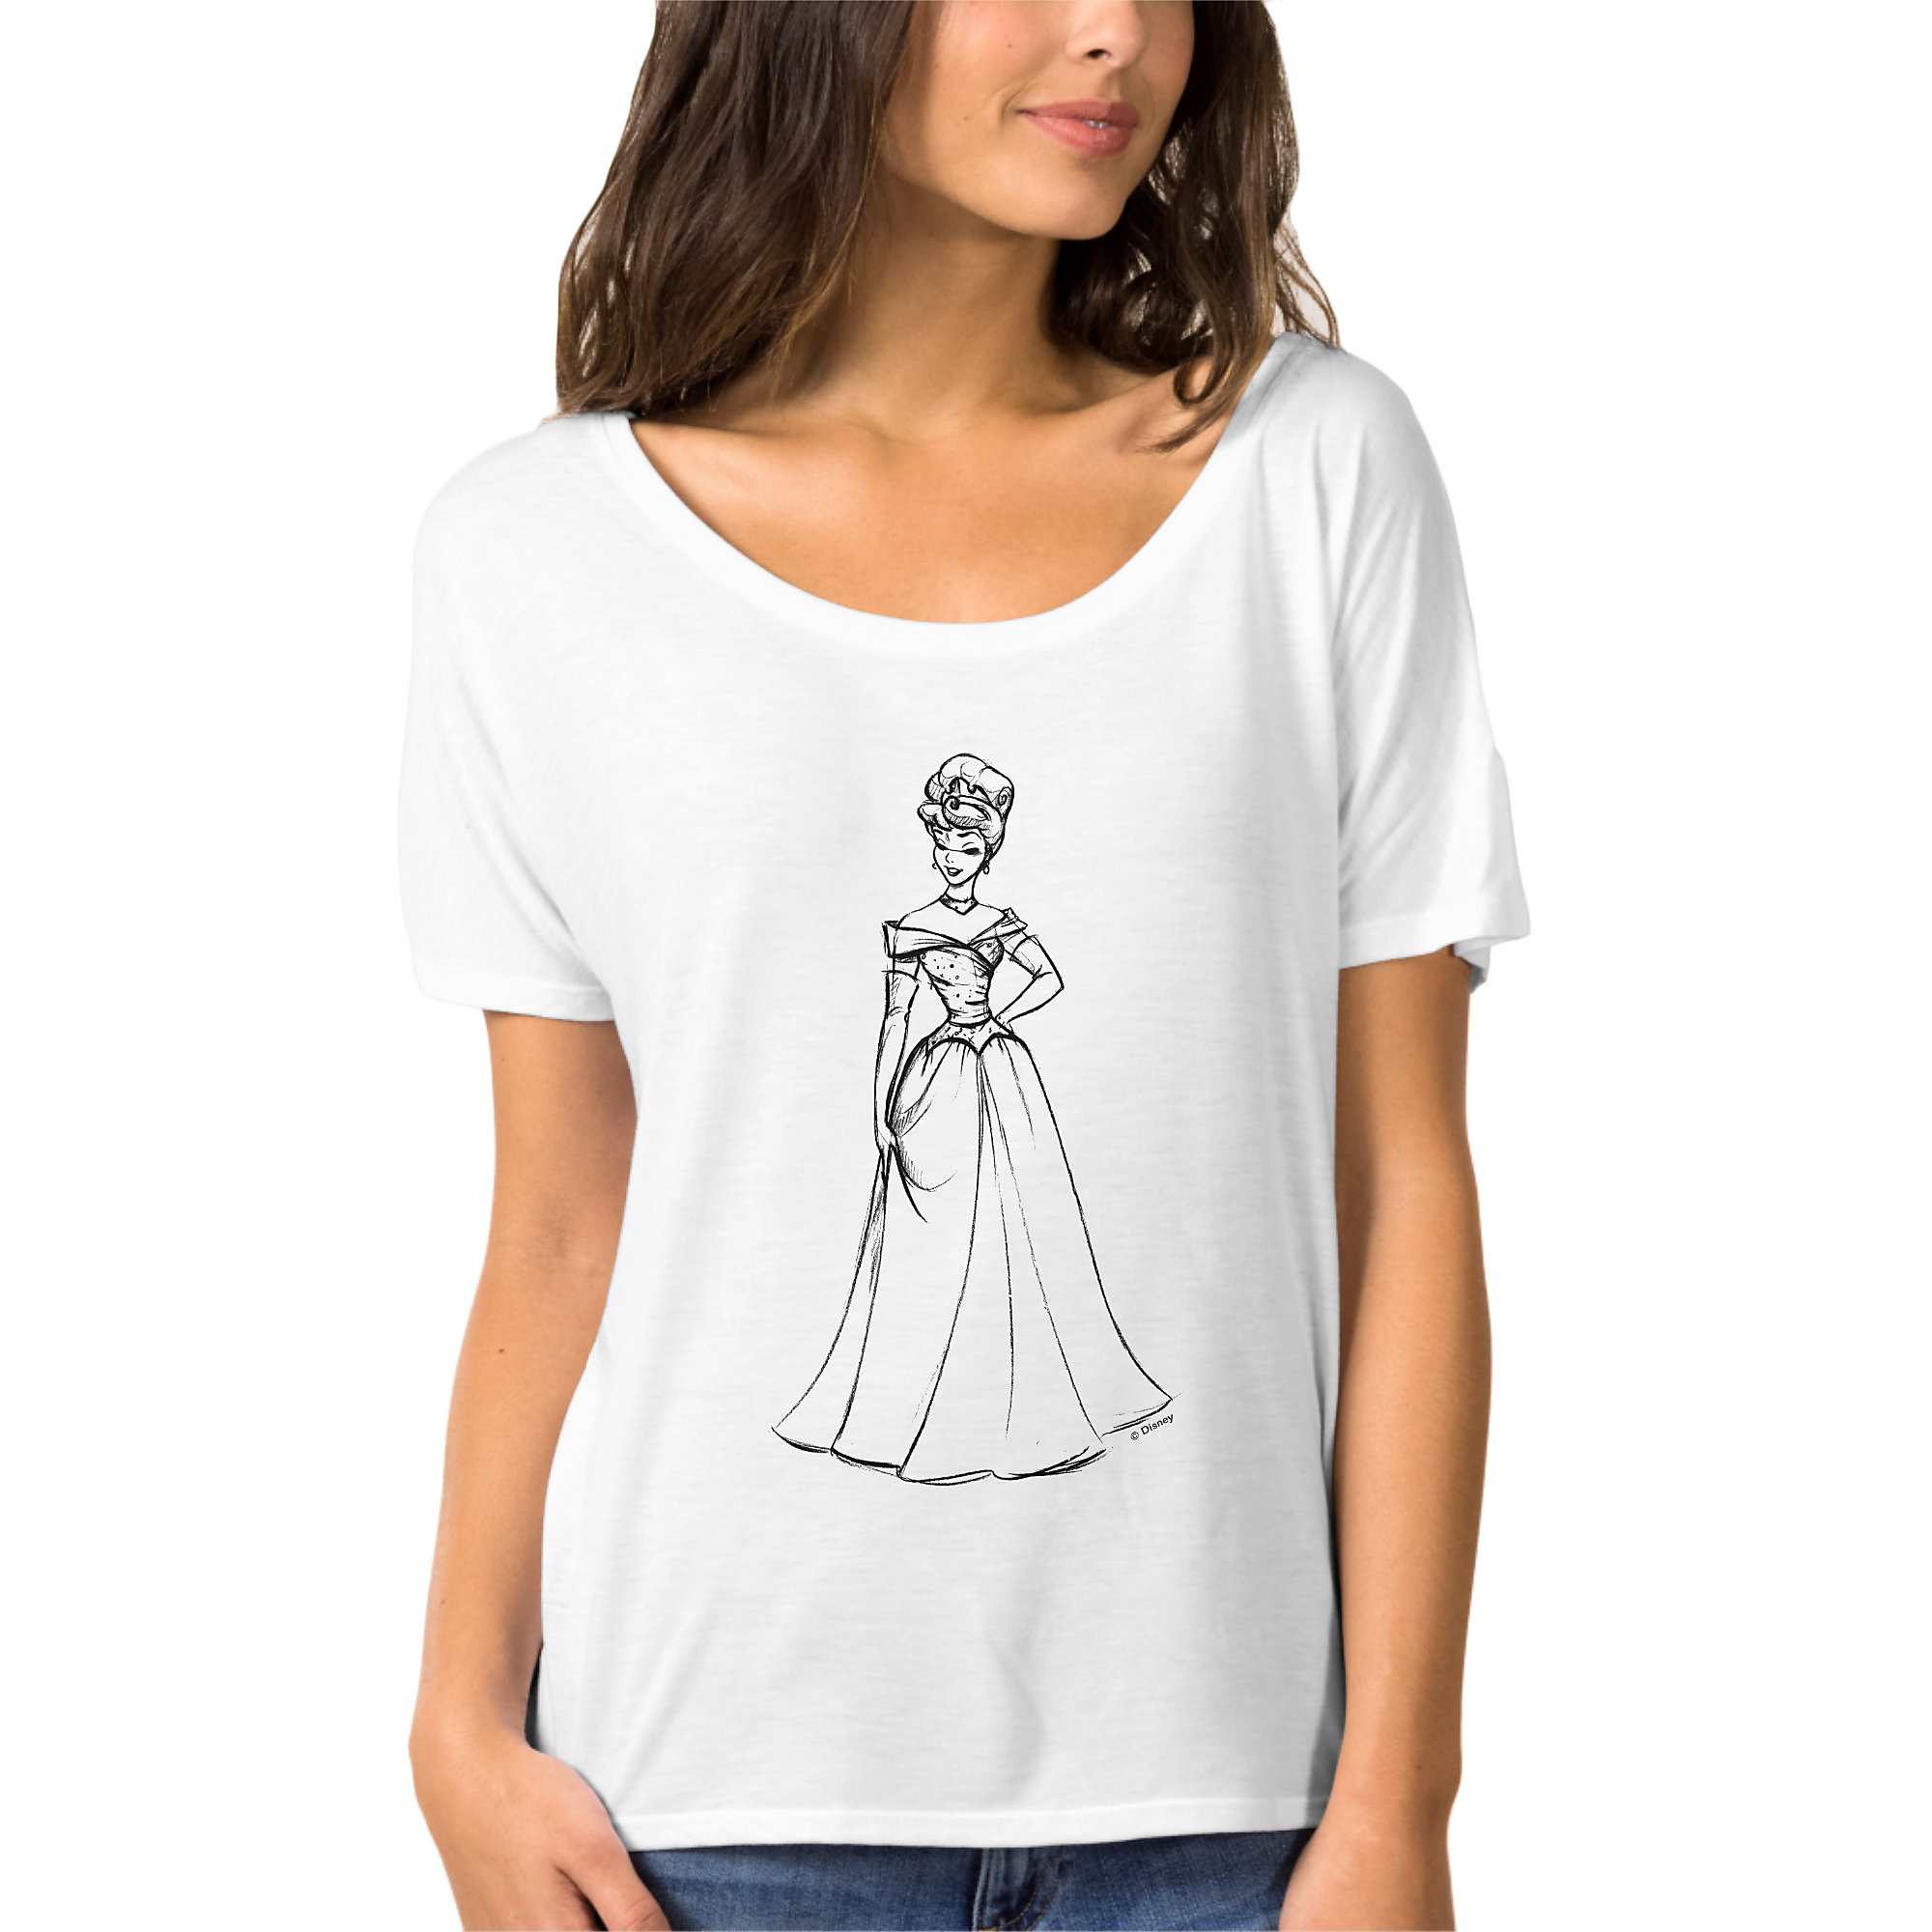 Aurora Boyfriend Tee for Women - Art of Princess Designer Collection